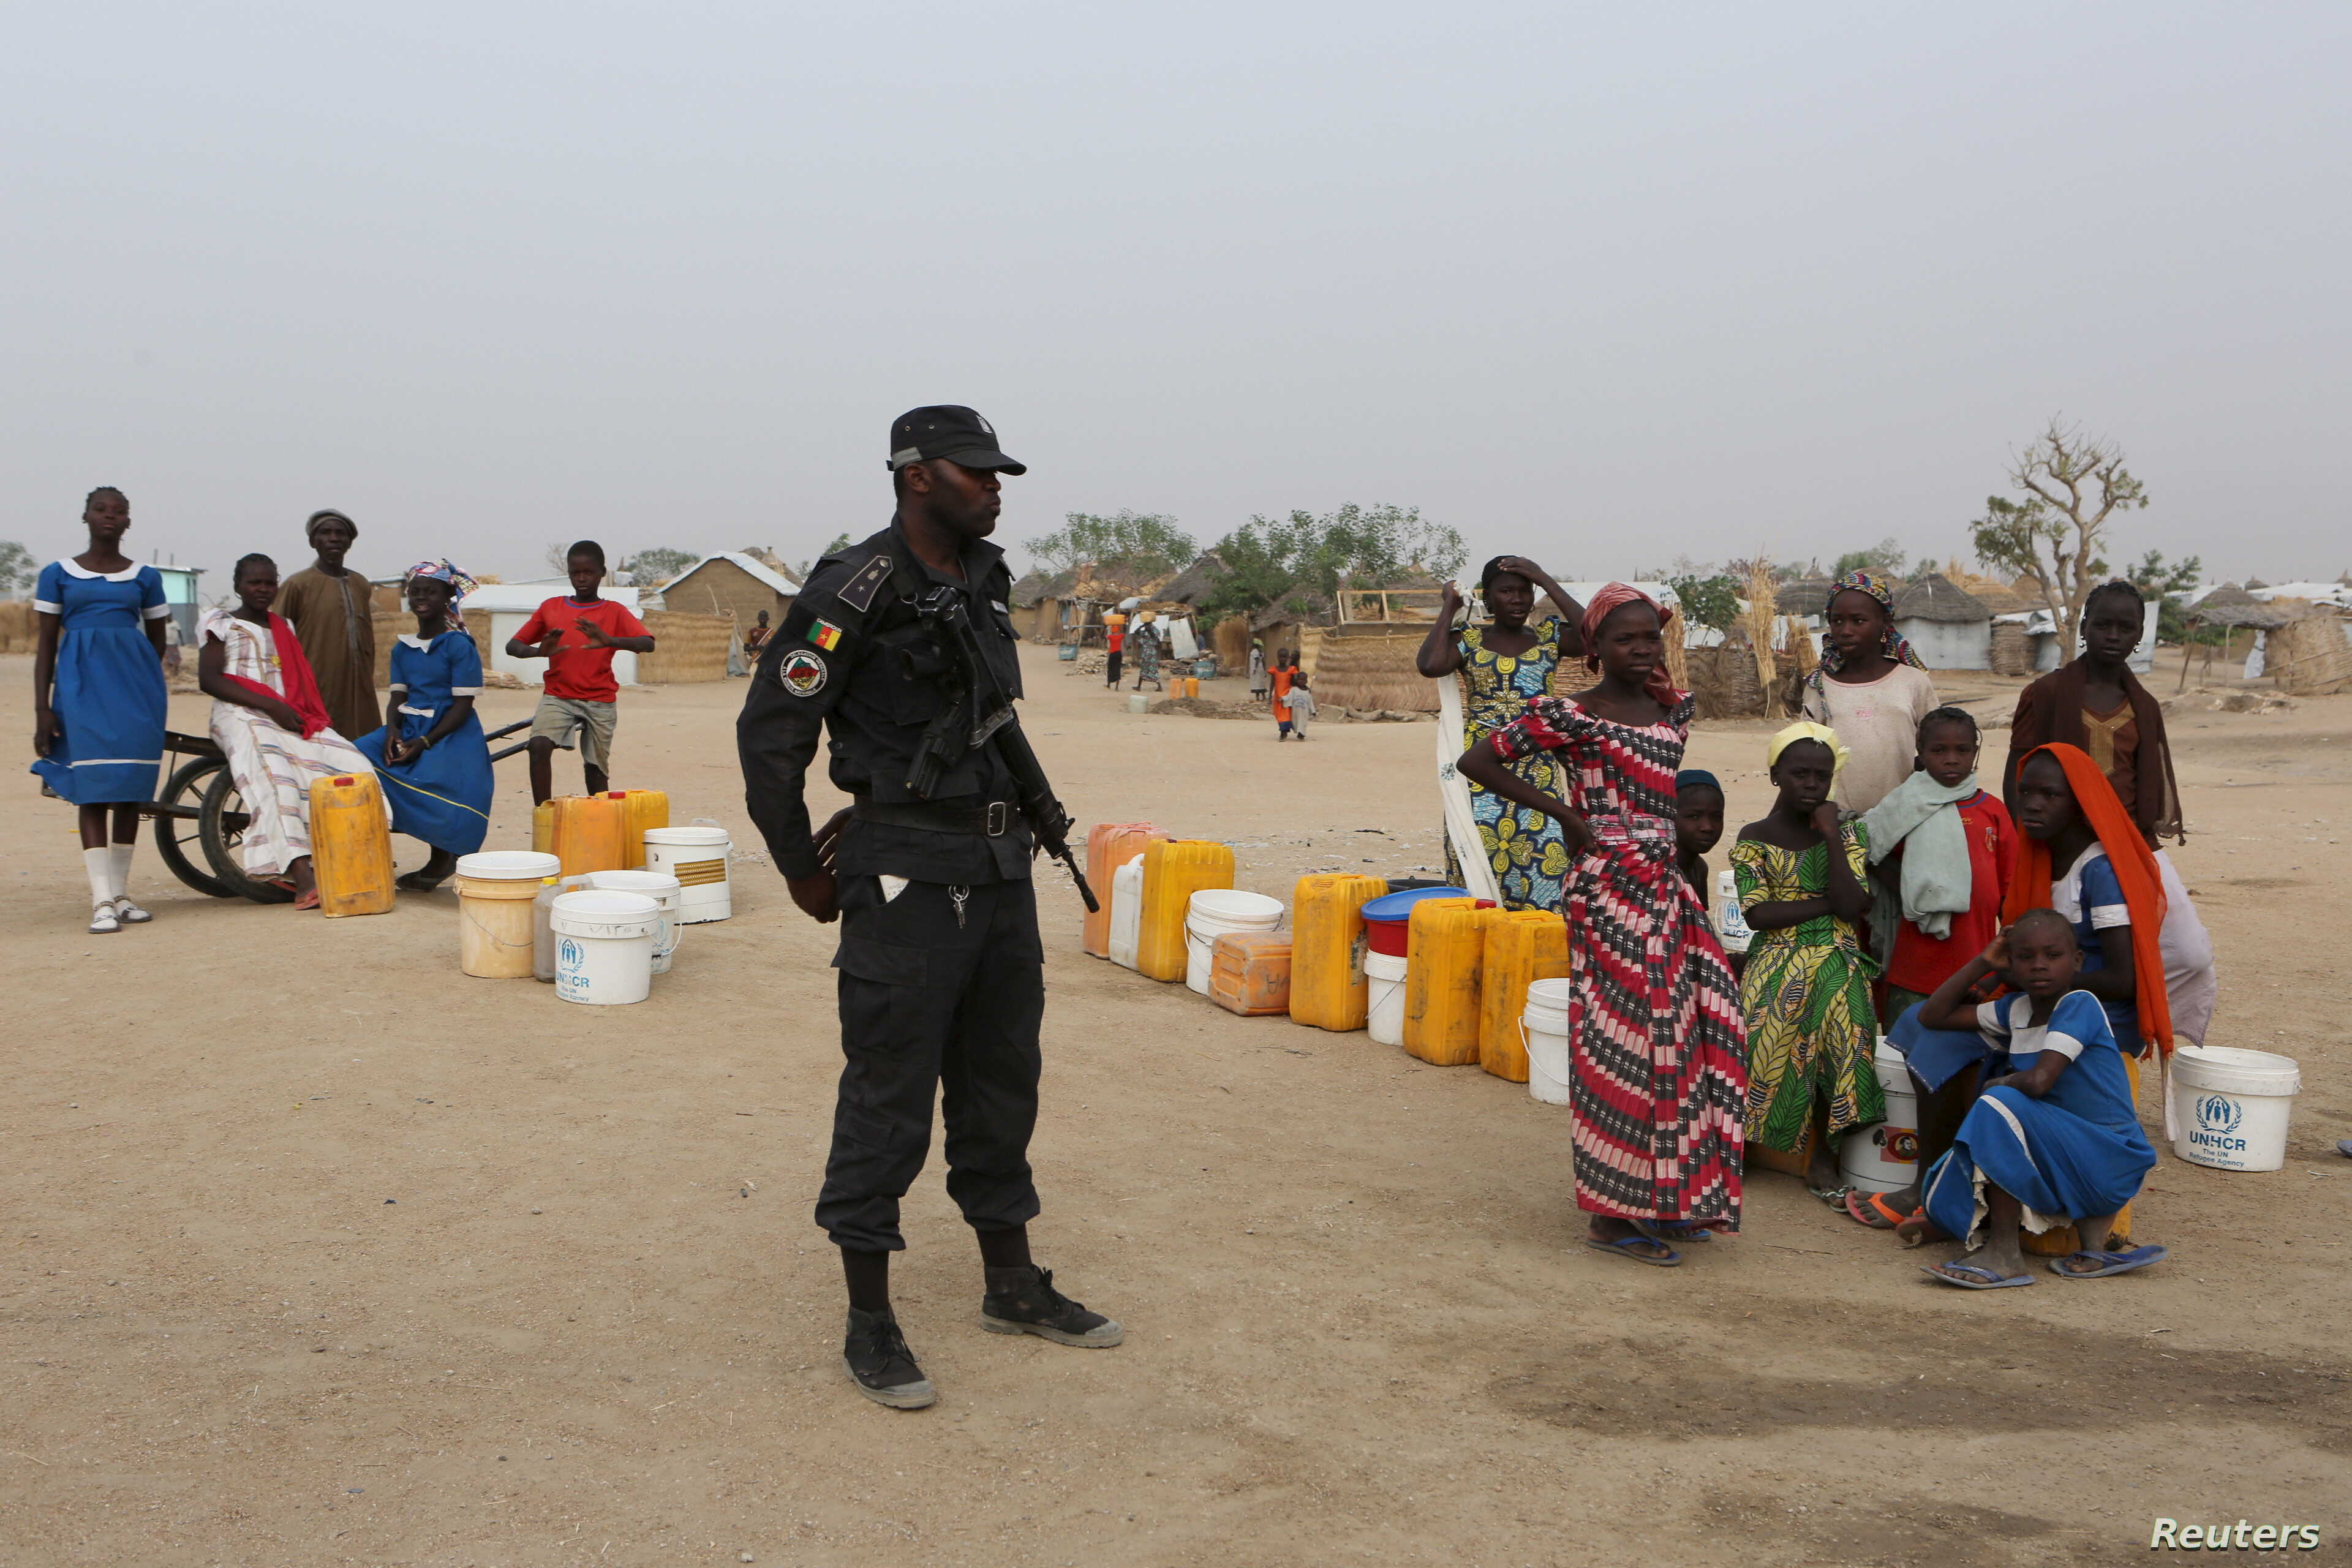 A Cameroonian police officer stands next to people waiting for water at the Minawao refugee camp for Nigerians who fled Boko Haram attacks in Minawao, Cameroon, March 15, 2016.